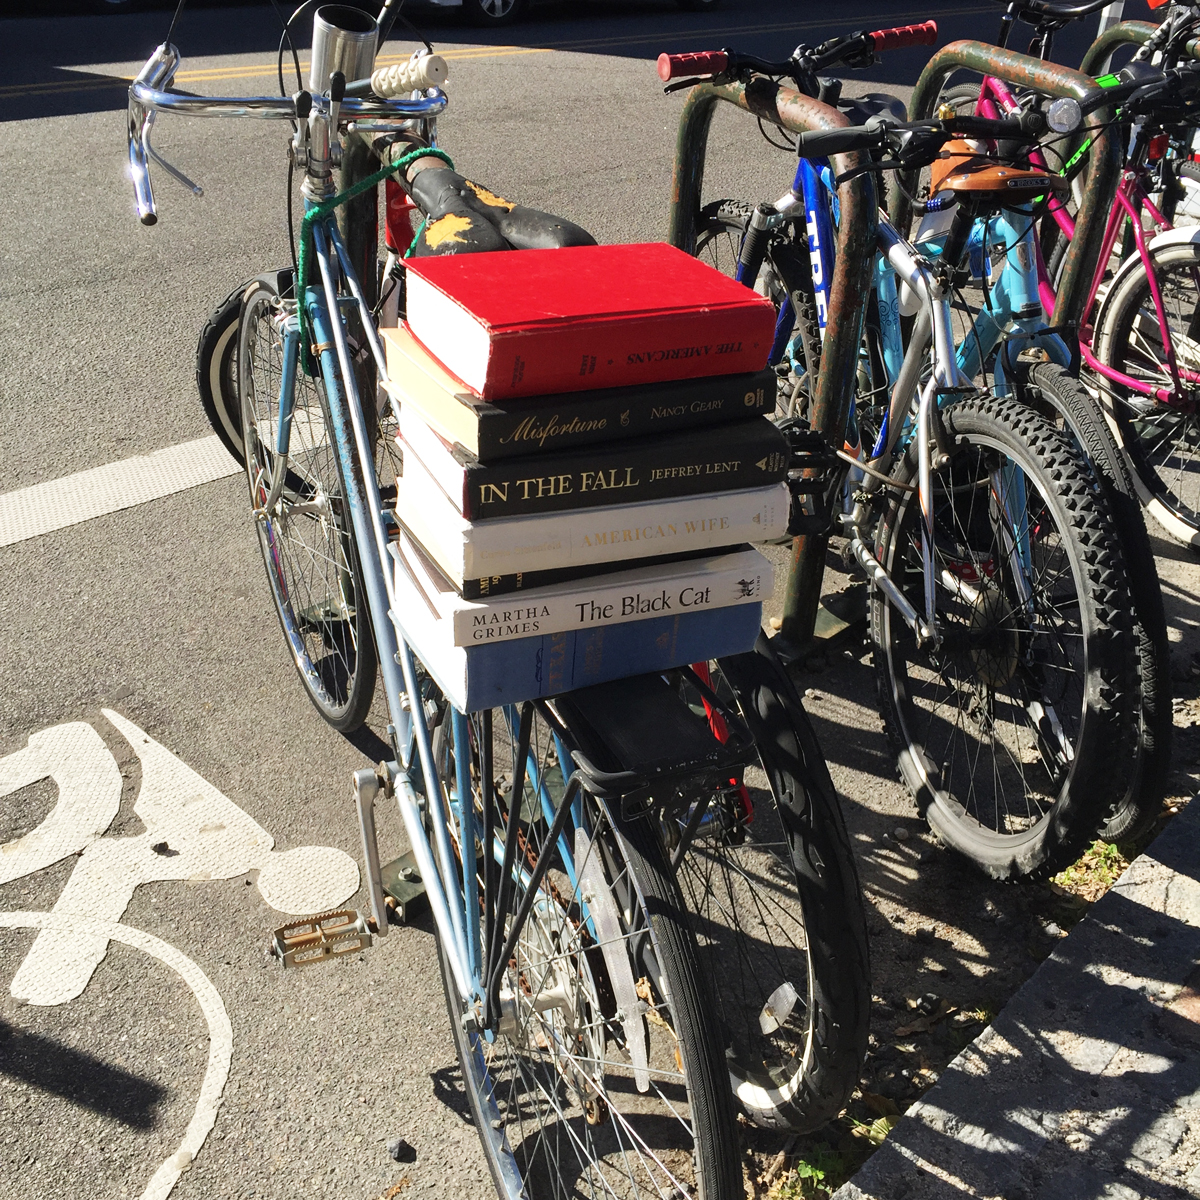 Isn't this awesome?  Blue Bicycle Books puts this bike and the books out everyday.